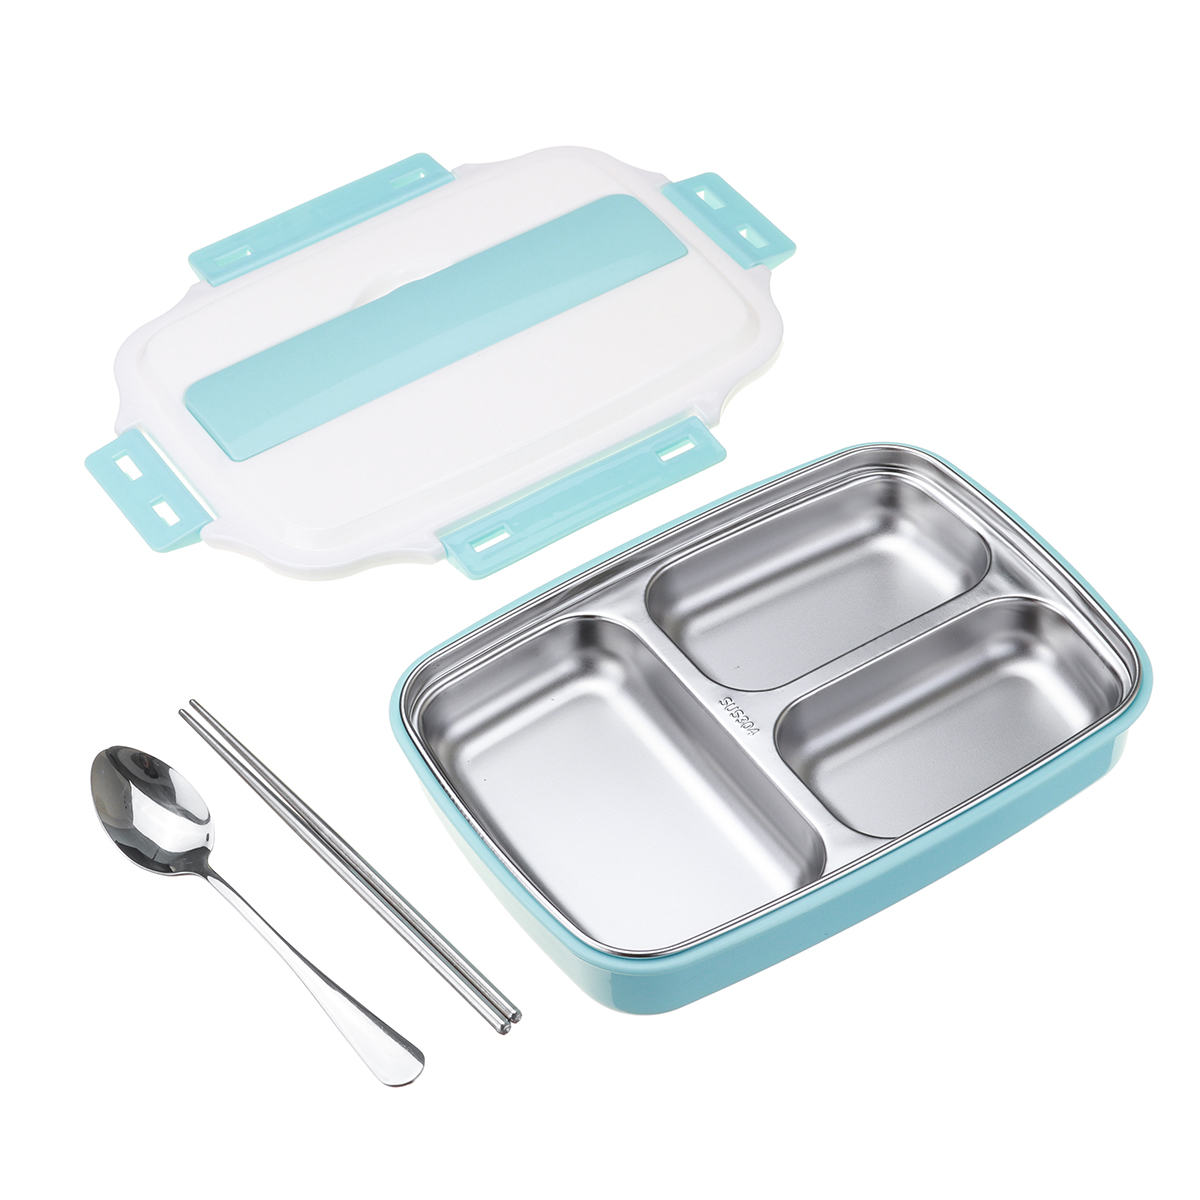 1.1L Stainless Steel Lunch Box Camping Picnic Tableware Food Con